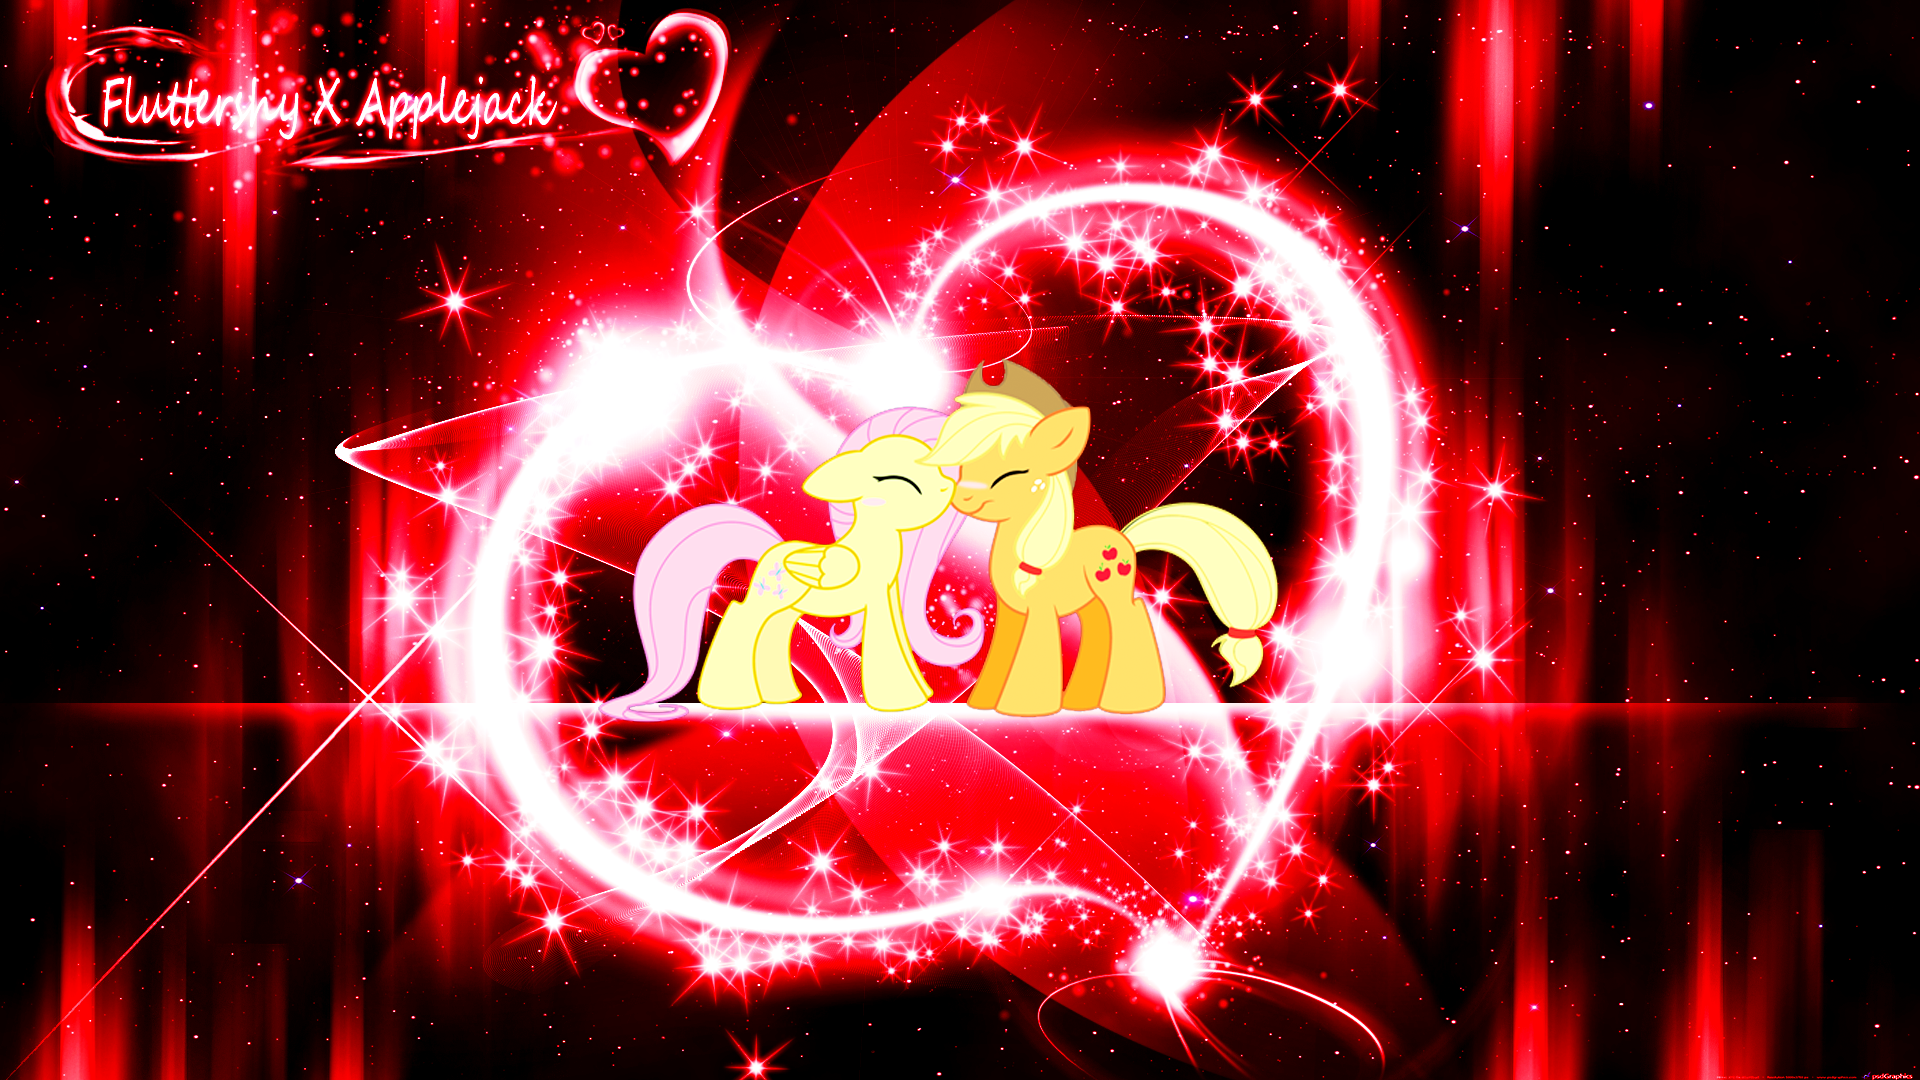 Fluttershy X Applejack (Wallpaper)(Request) by Hardii